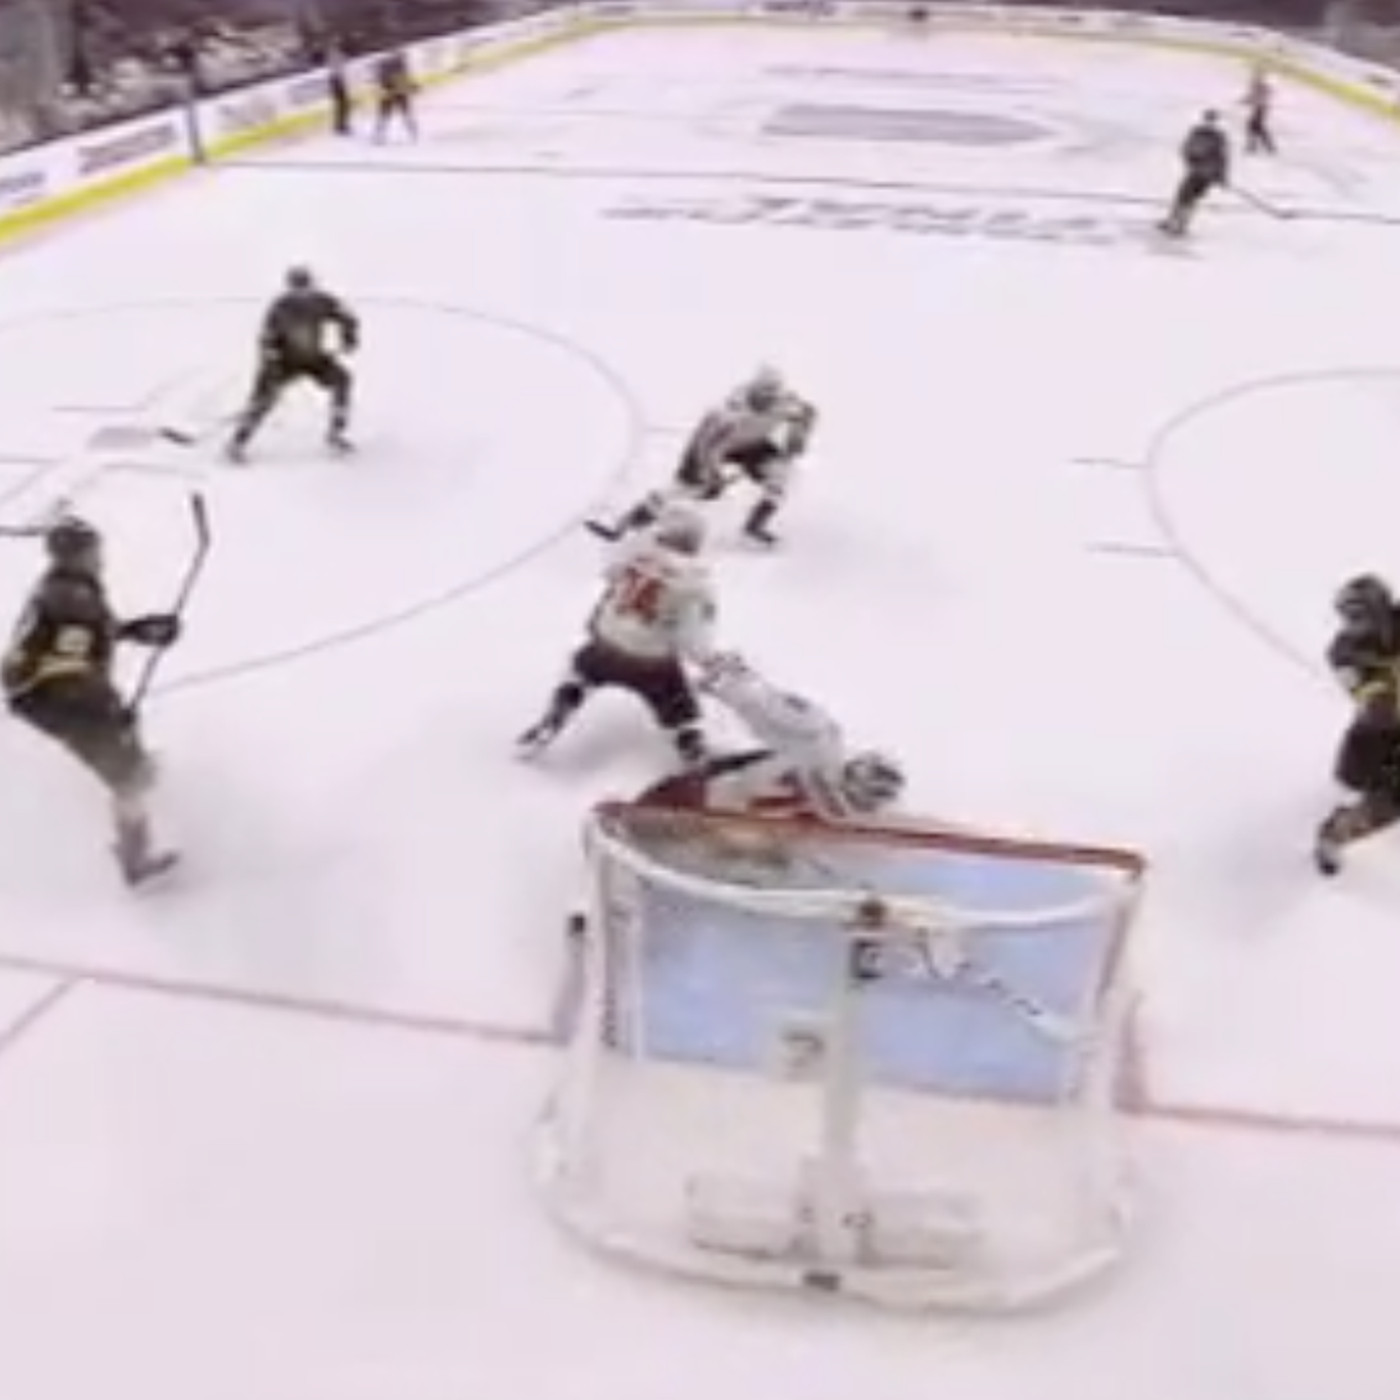 96a7cecc3 Stanley Cup results  Capitals beat Knights on Braden Holtby wild save -  SBNation.com